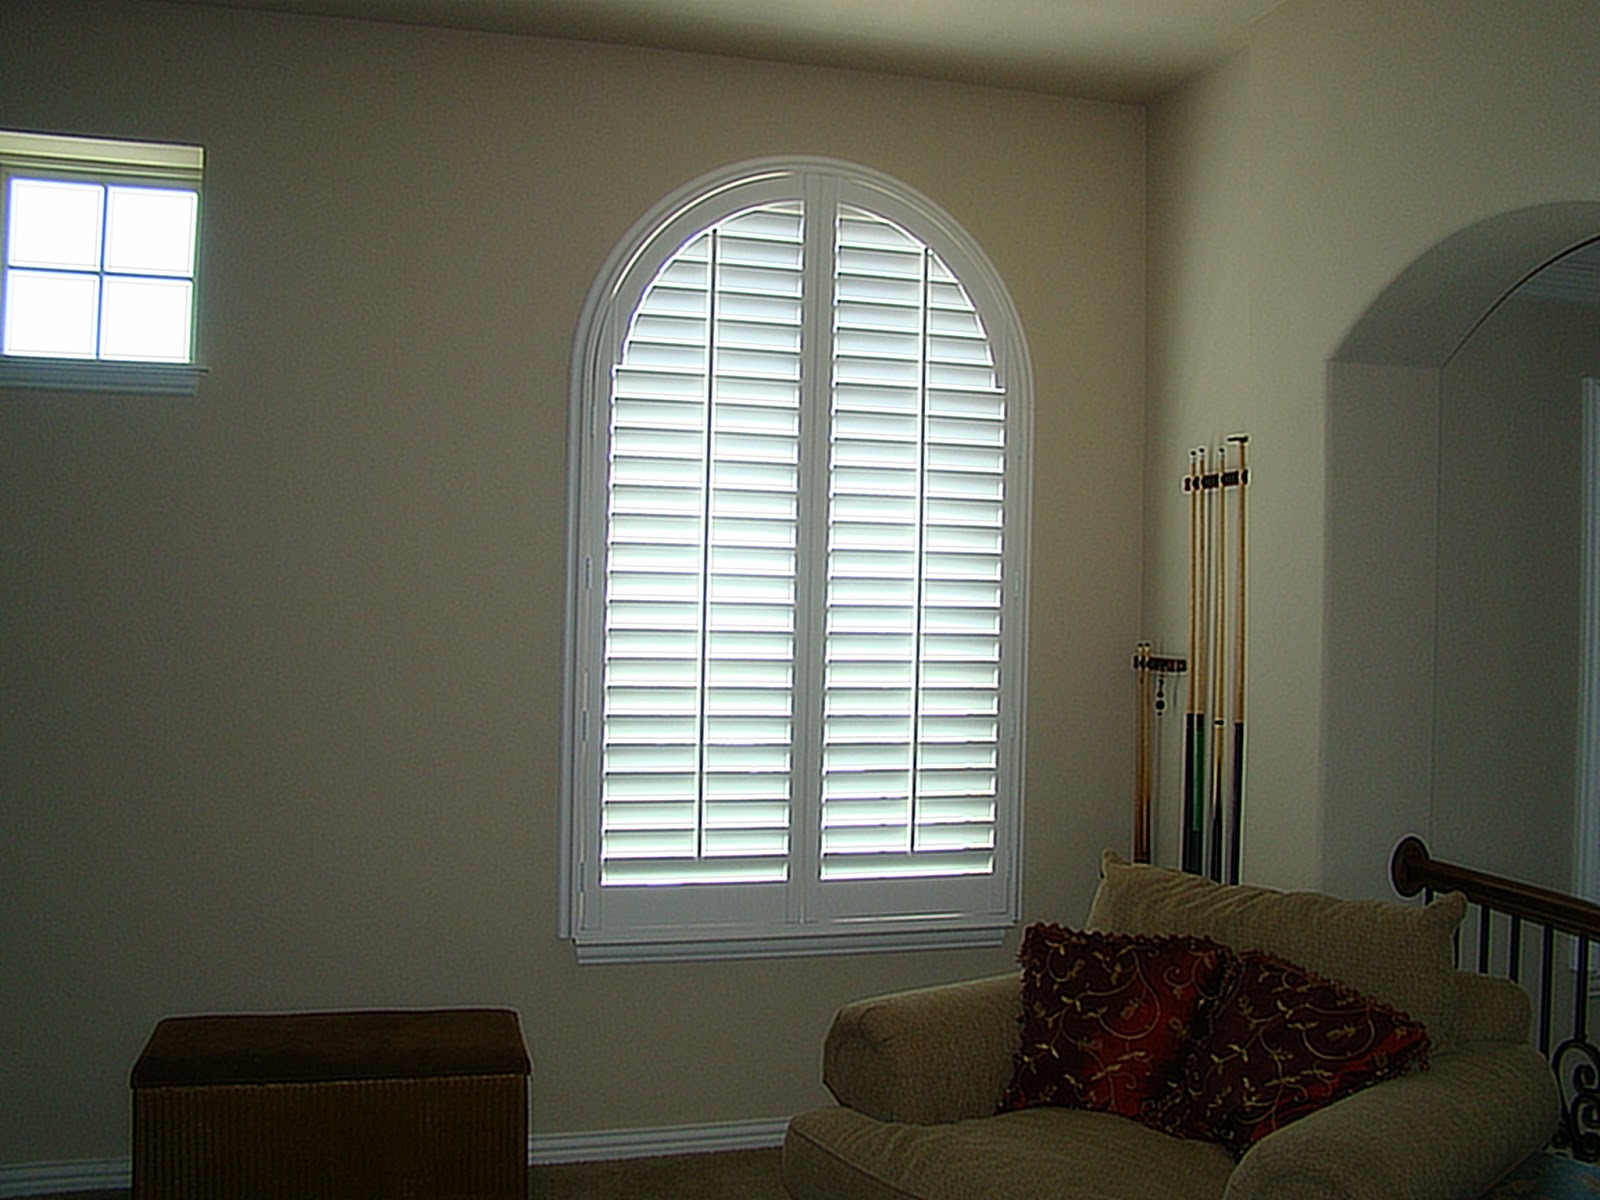 Avenue window fashions plantation shutters denton texas